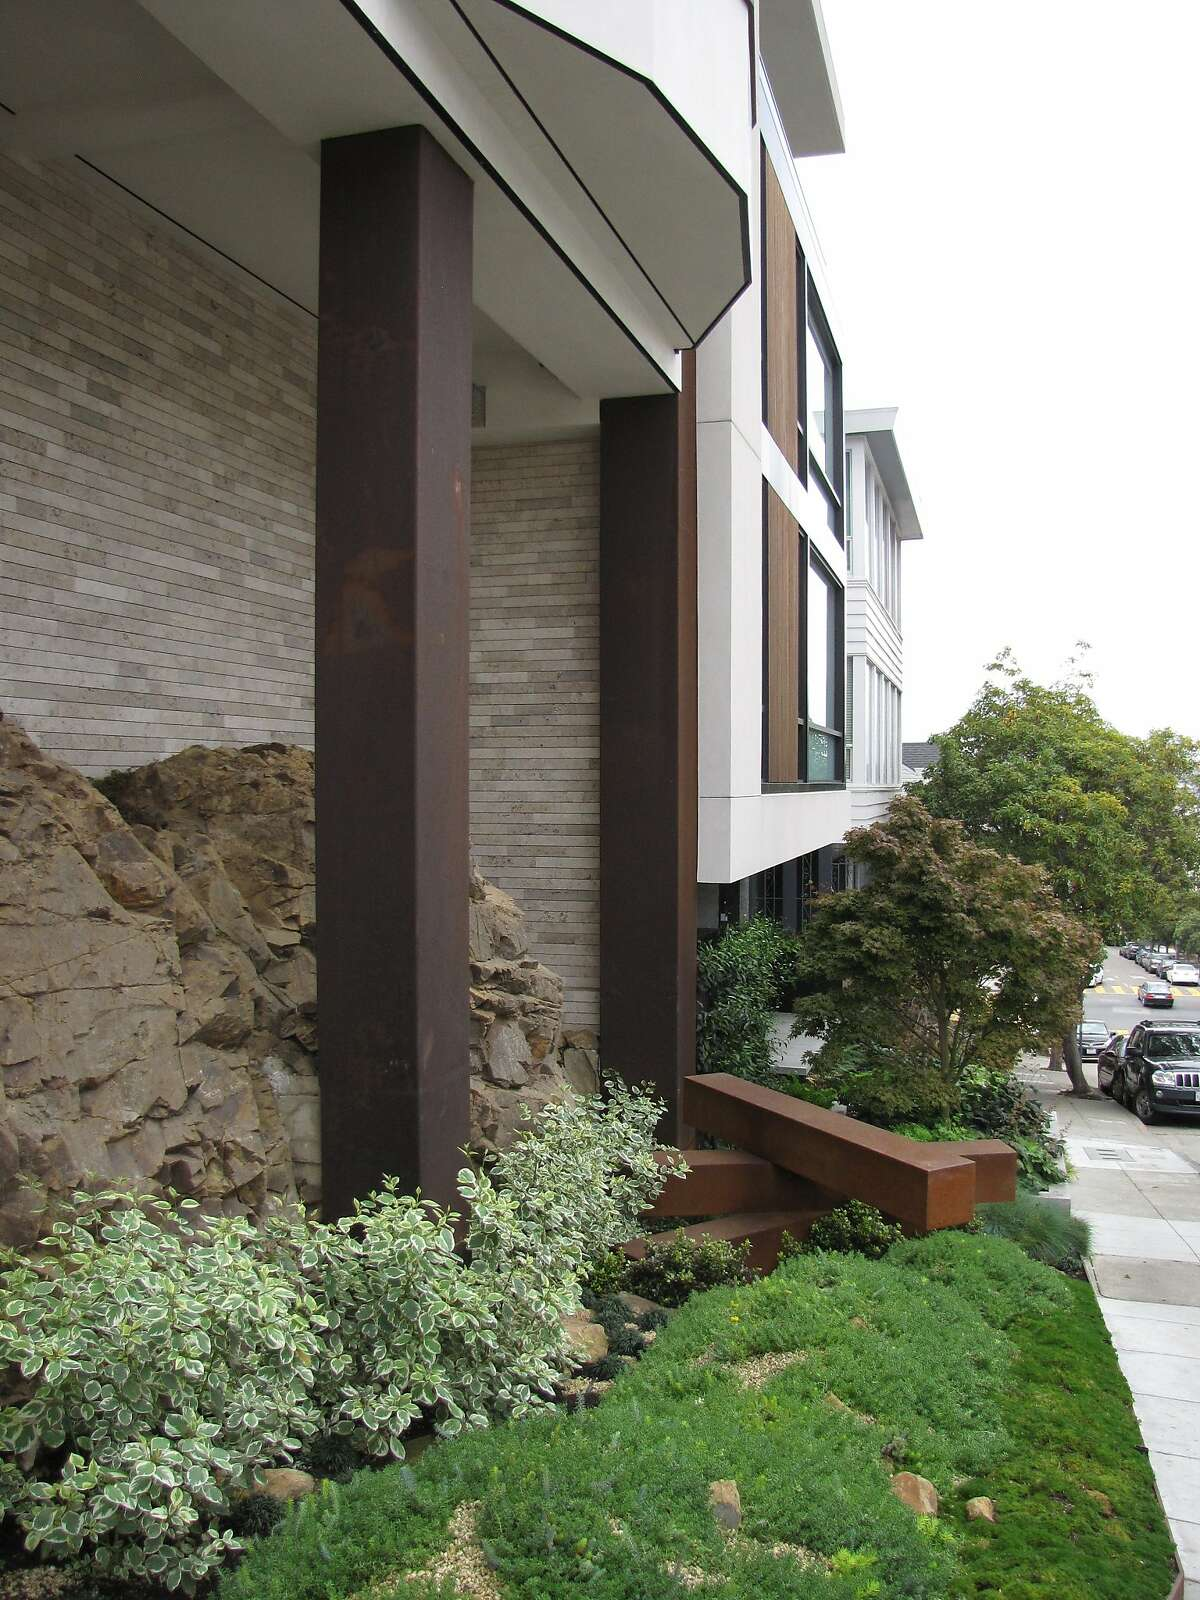 The two-unit building at 1535-1555 Francisco St. is nothing much in terms of architecture, but the sandstone outcrop that pushes out from the foundation is an evocative reminder that Russian Hill and other San Francisco peaks as acts of nature as well as neighborhoods with views.